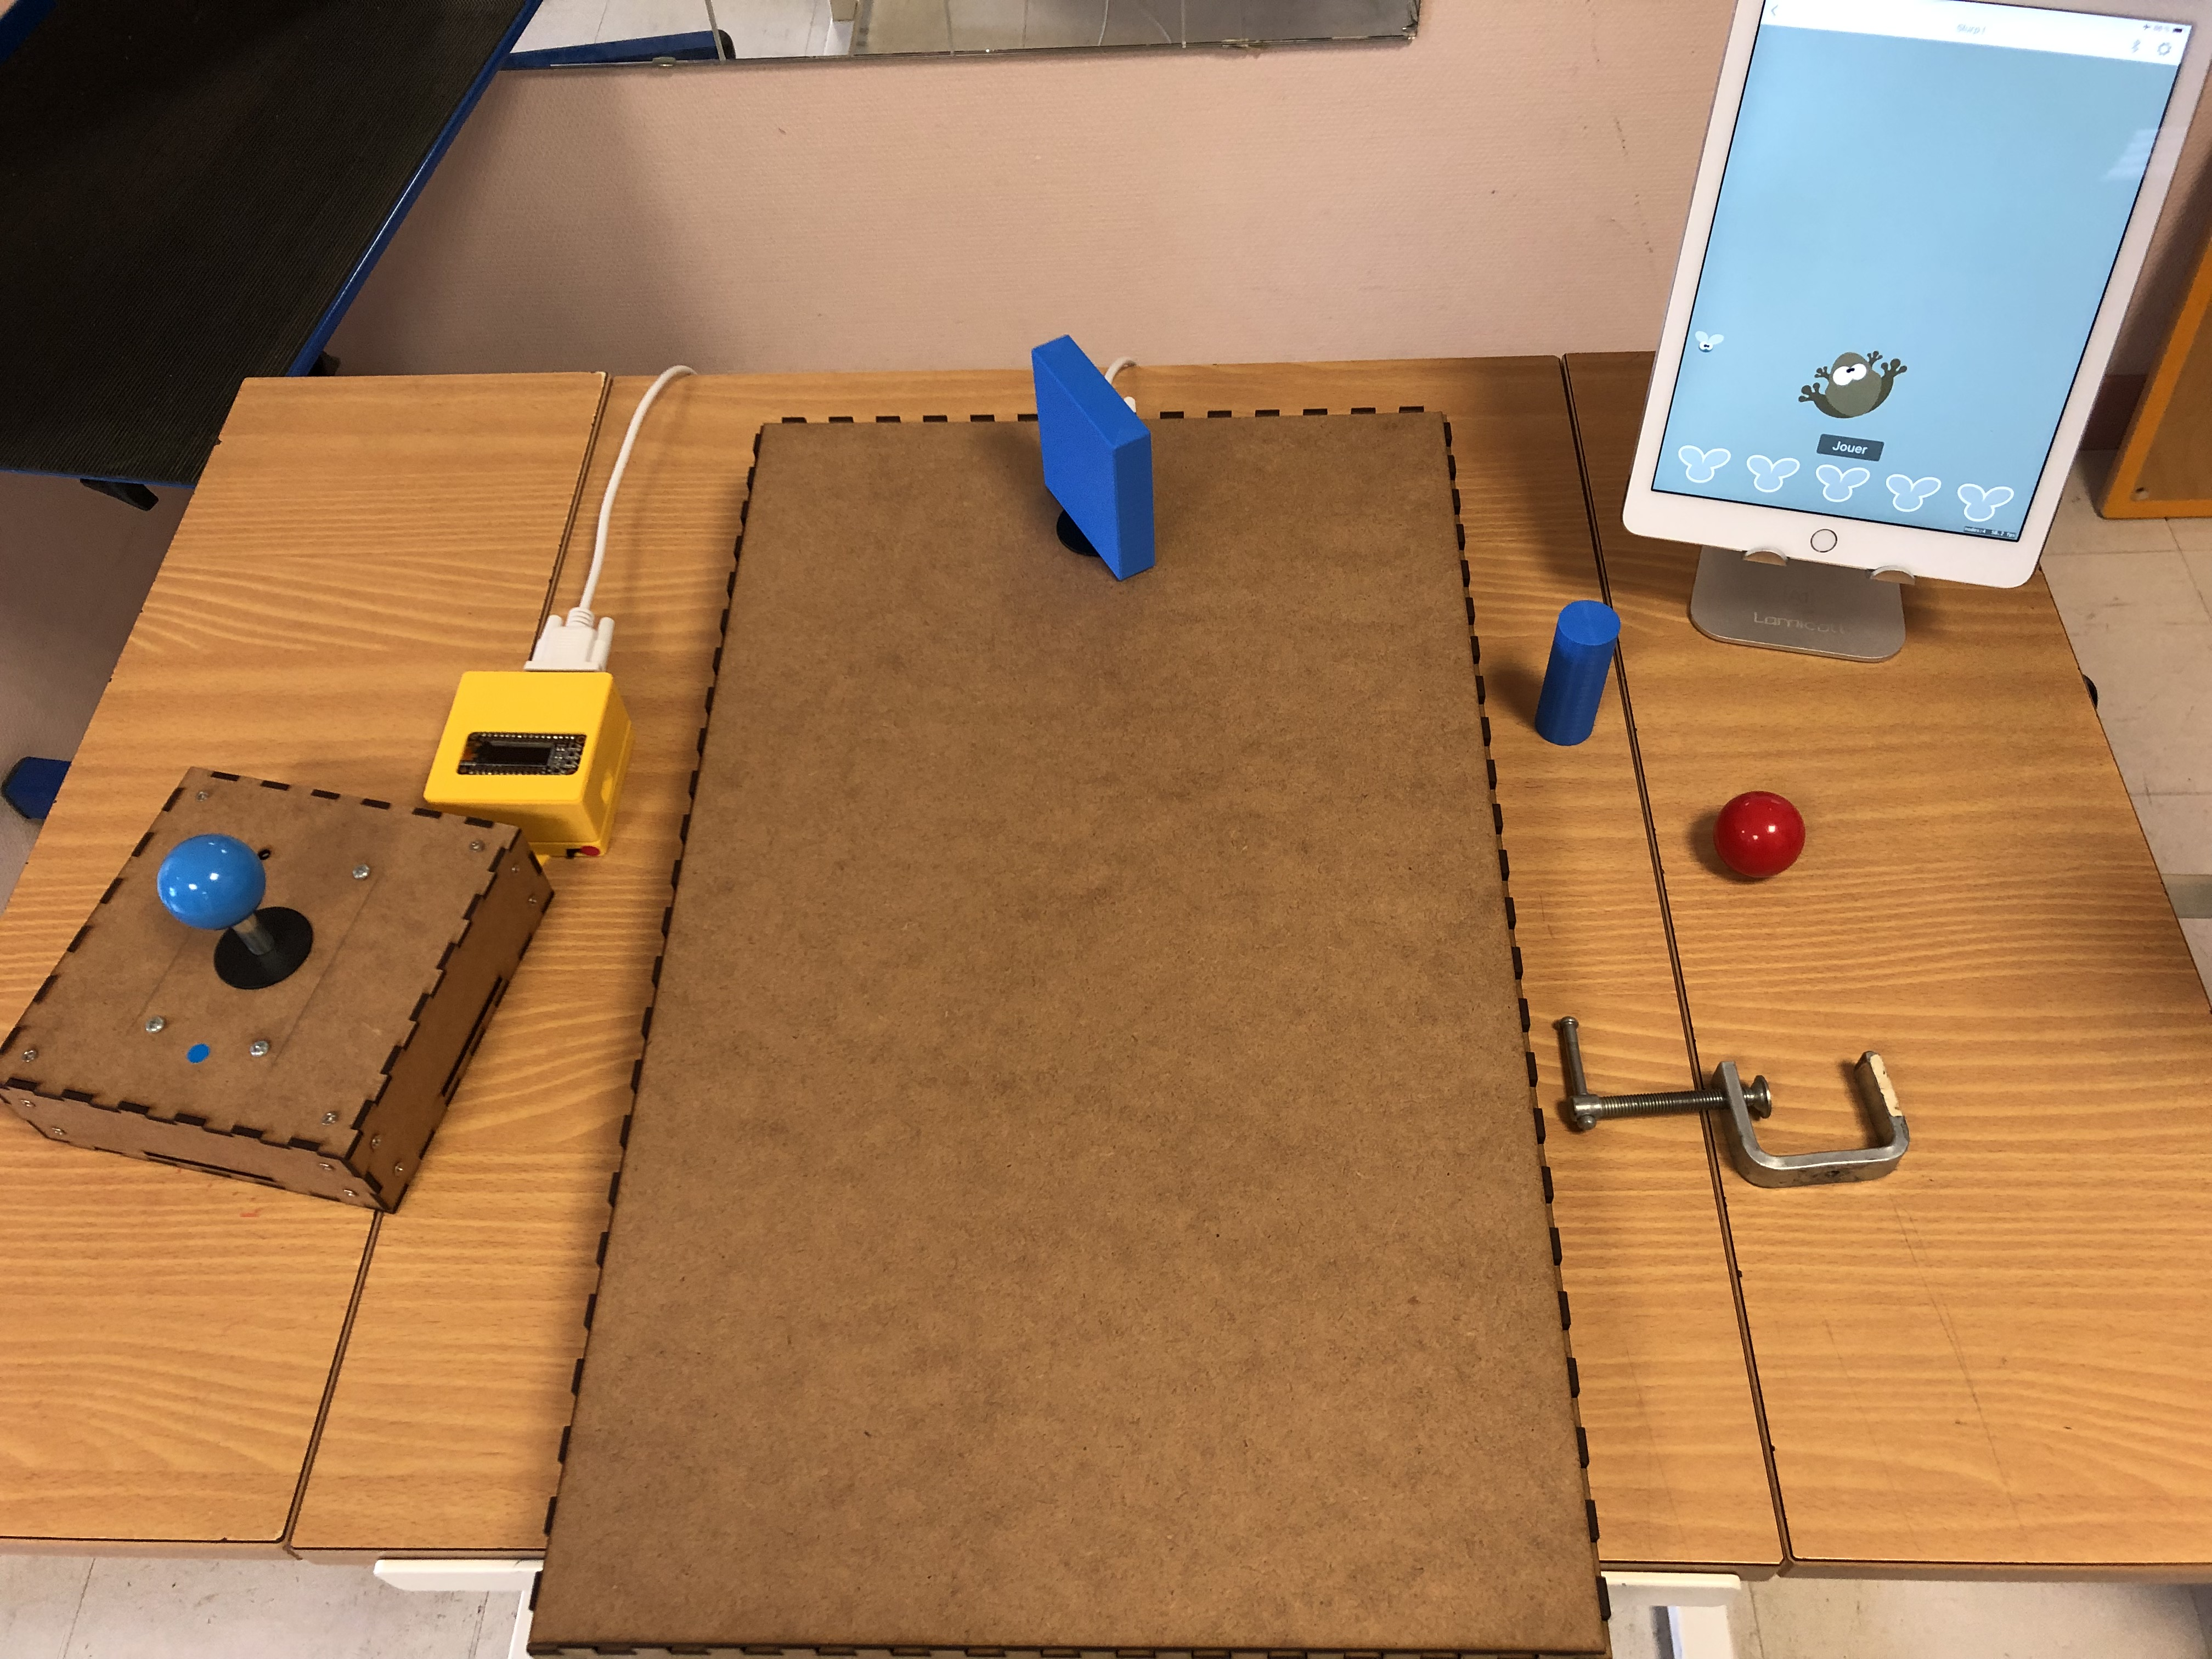 Set up with plates and joystick plugged to the box connected to the iPad